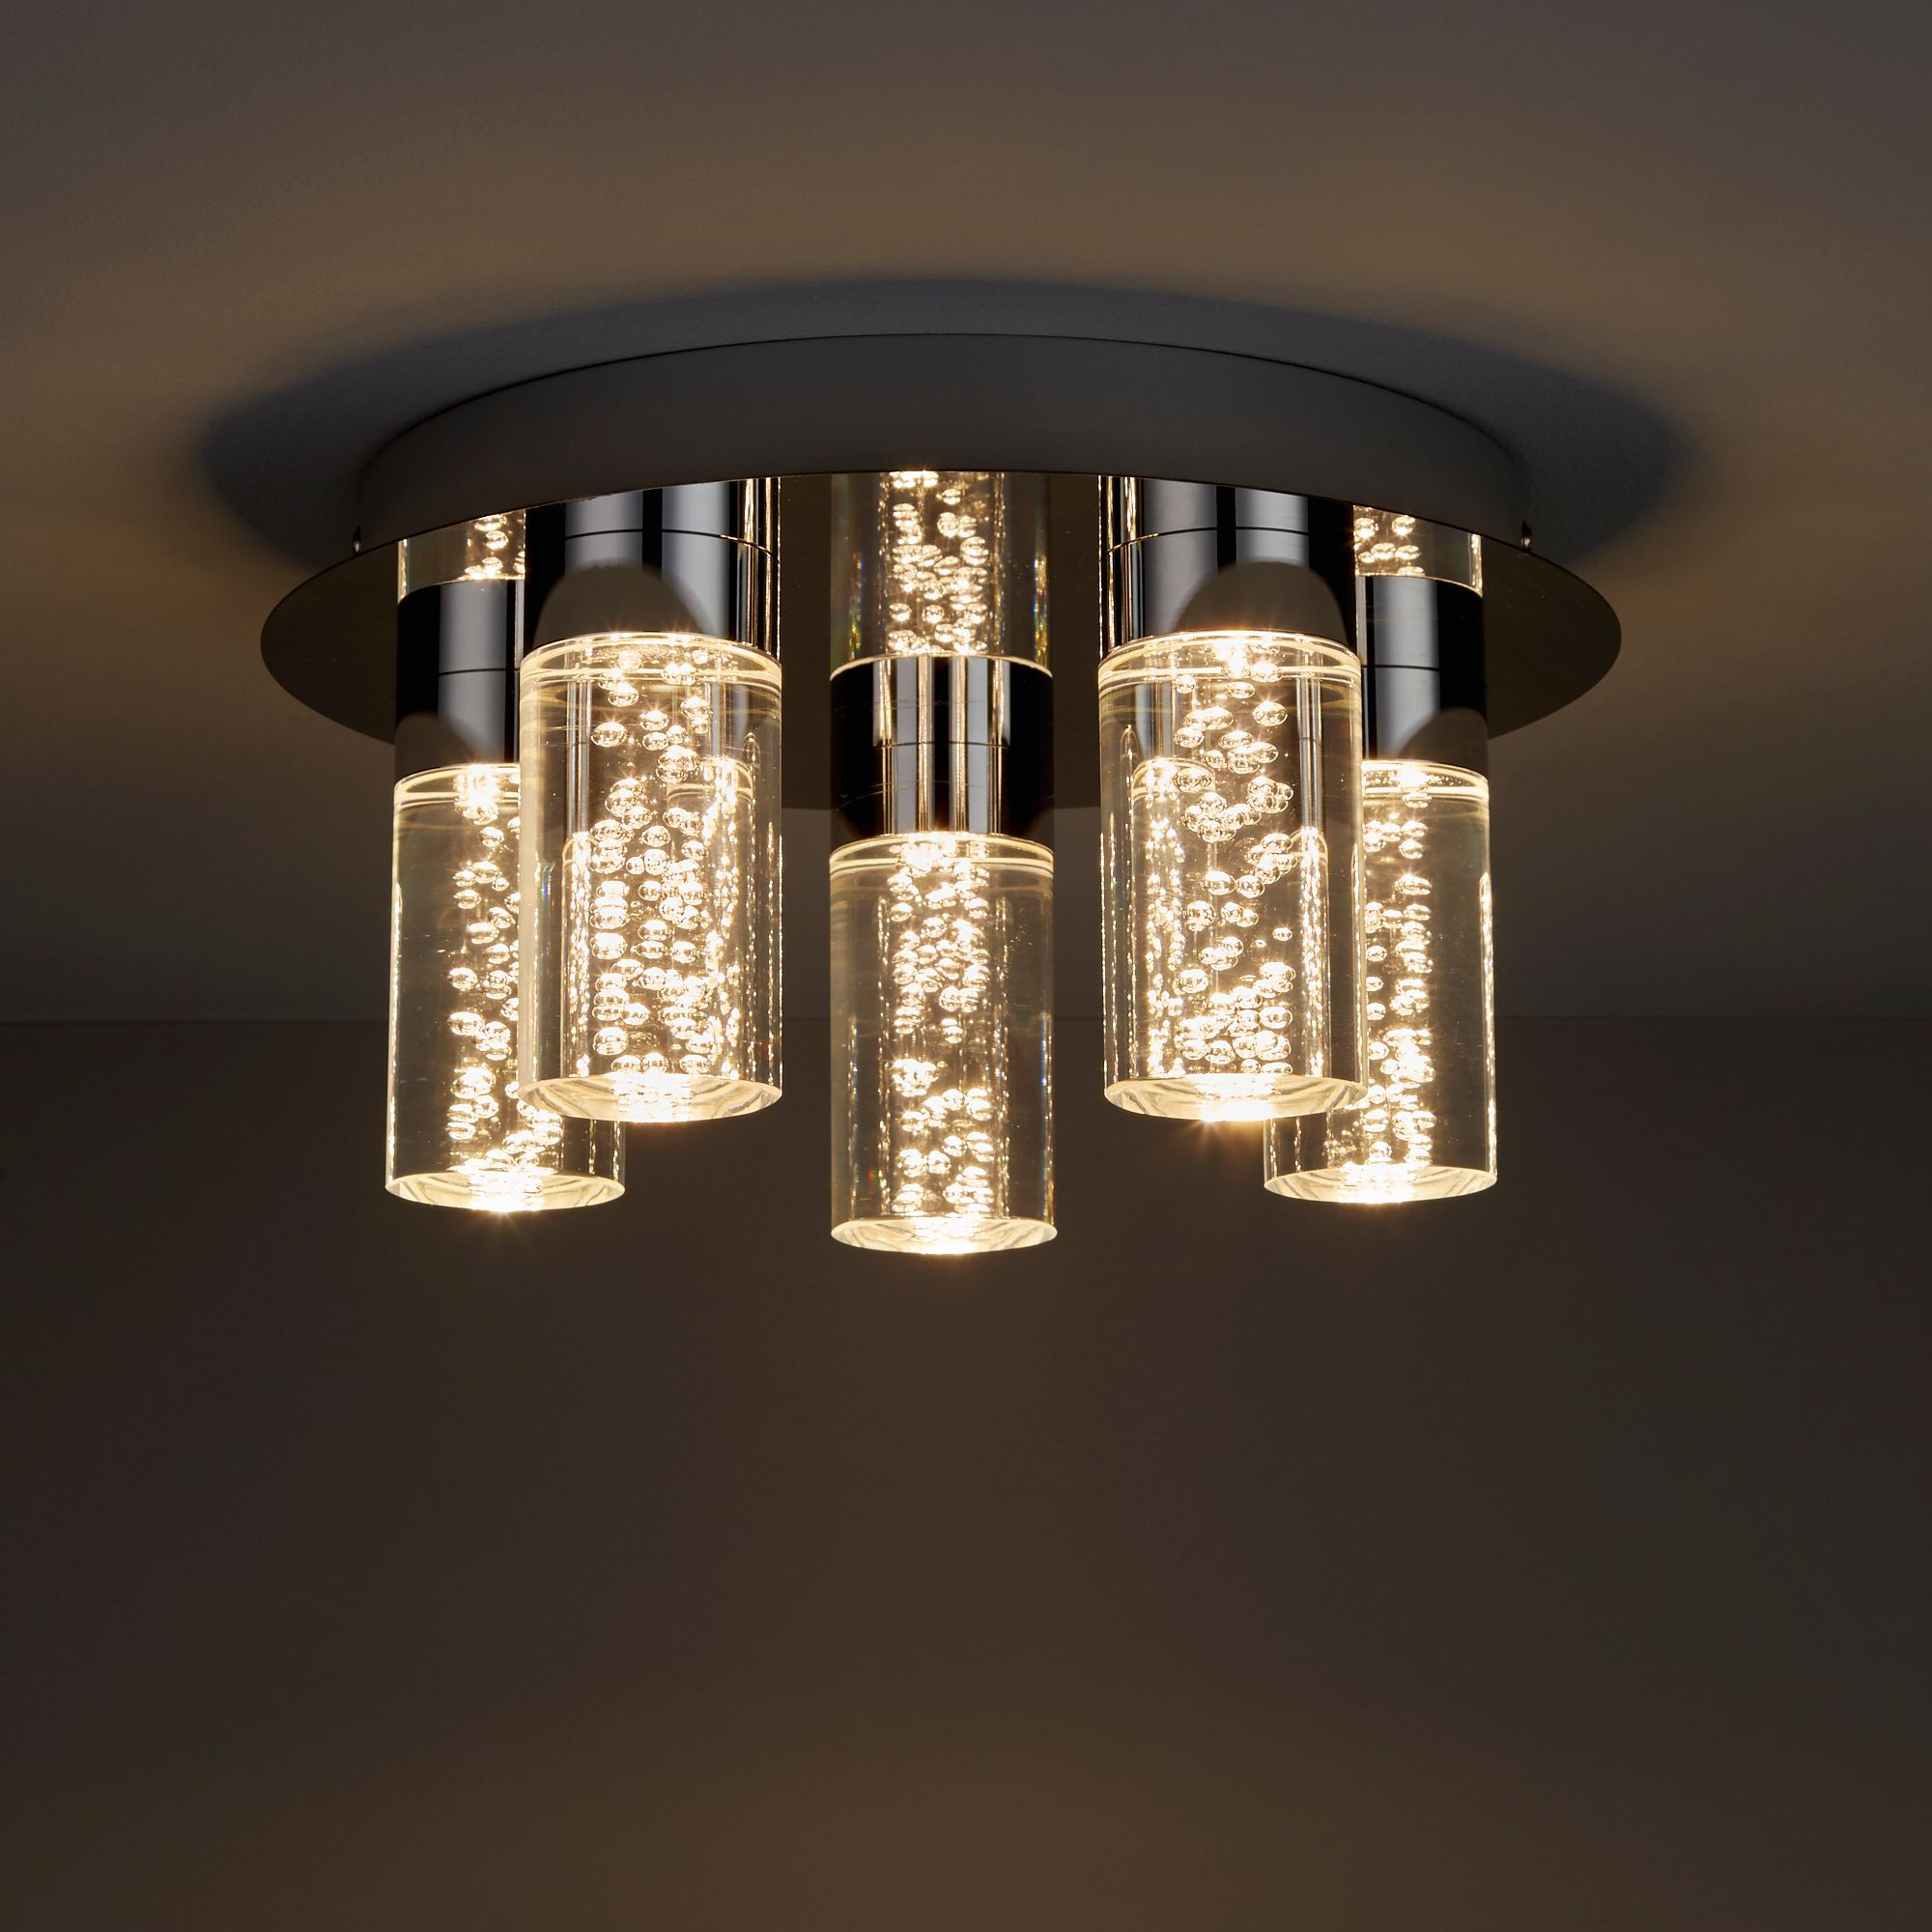 Kitchen Lighting Fixture Sets: Hubble Chrome Effect 5 Lamp Bathroom Ceiling Light